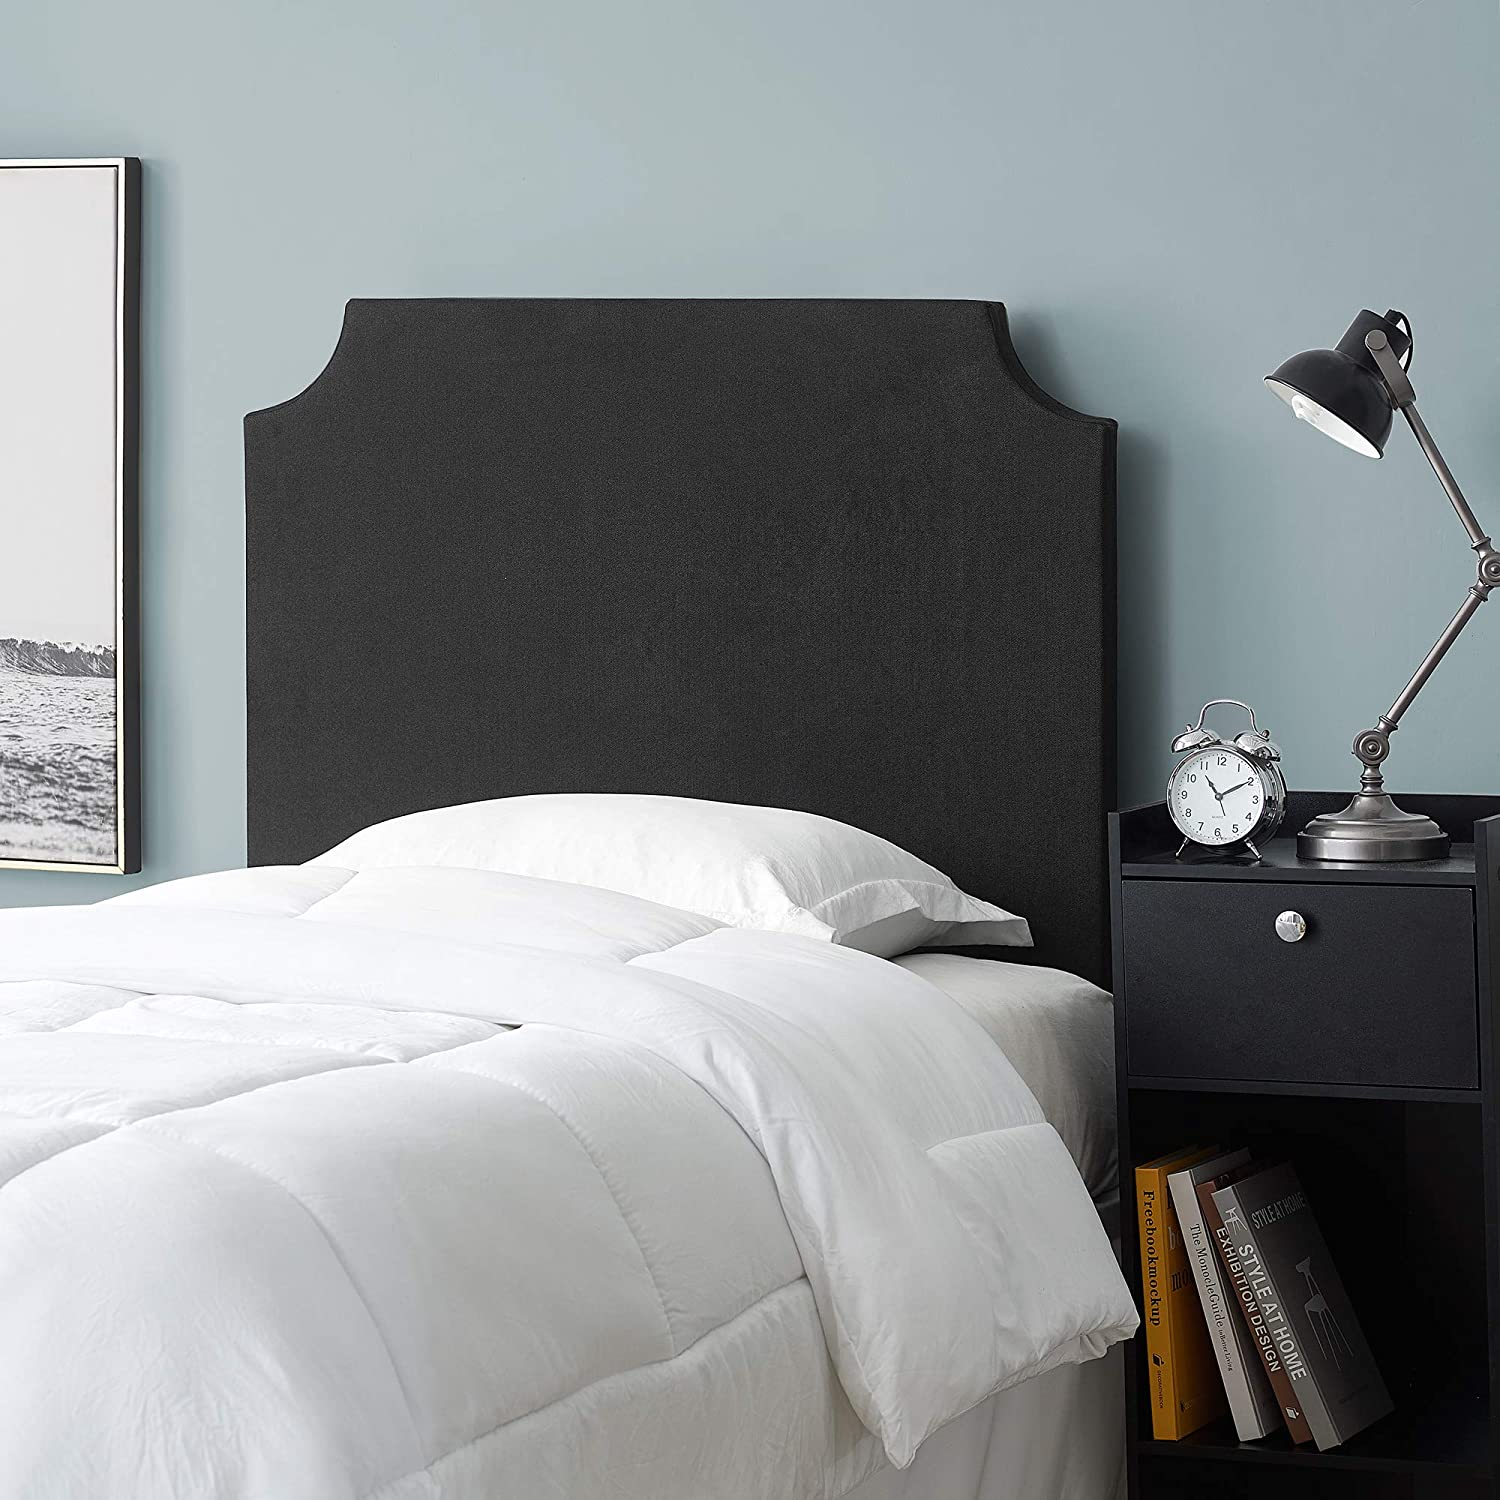 Free shipping on posting reviews Max 60% OFF DIY Headboard - Black Bedding College